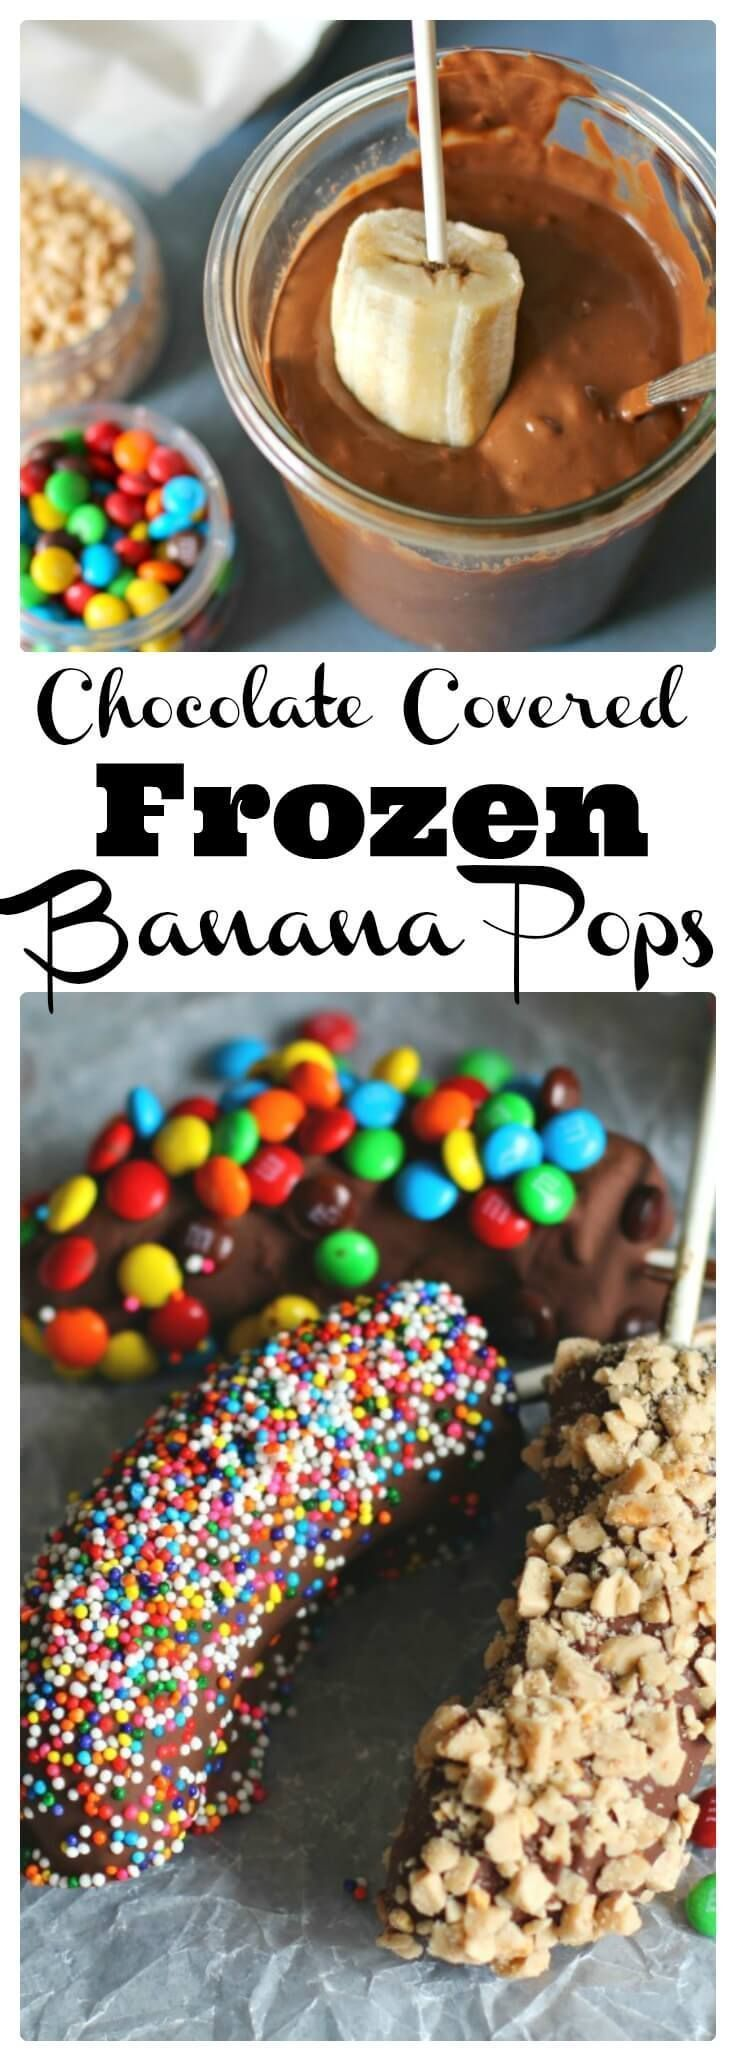 These Frozen Chocolate Dipped Bananas will not only be a fun activity to do with your kids, but they will be a fresh, healthy treat for their bottomless stomachs! Pick your toppings: M&M's, sprinkles, nuts, coconut! #dessert #bananas #chocolate #m&ms #treats #sprinkles